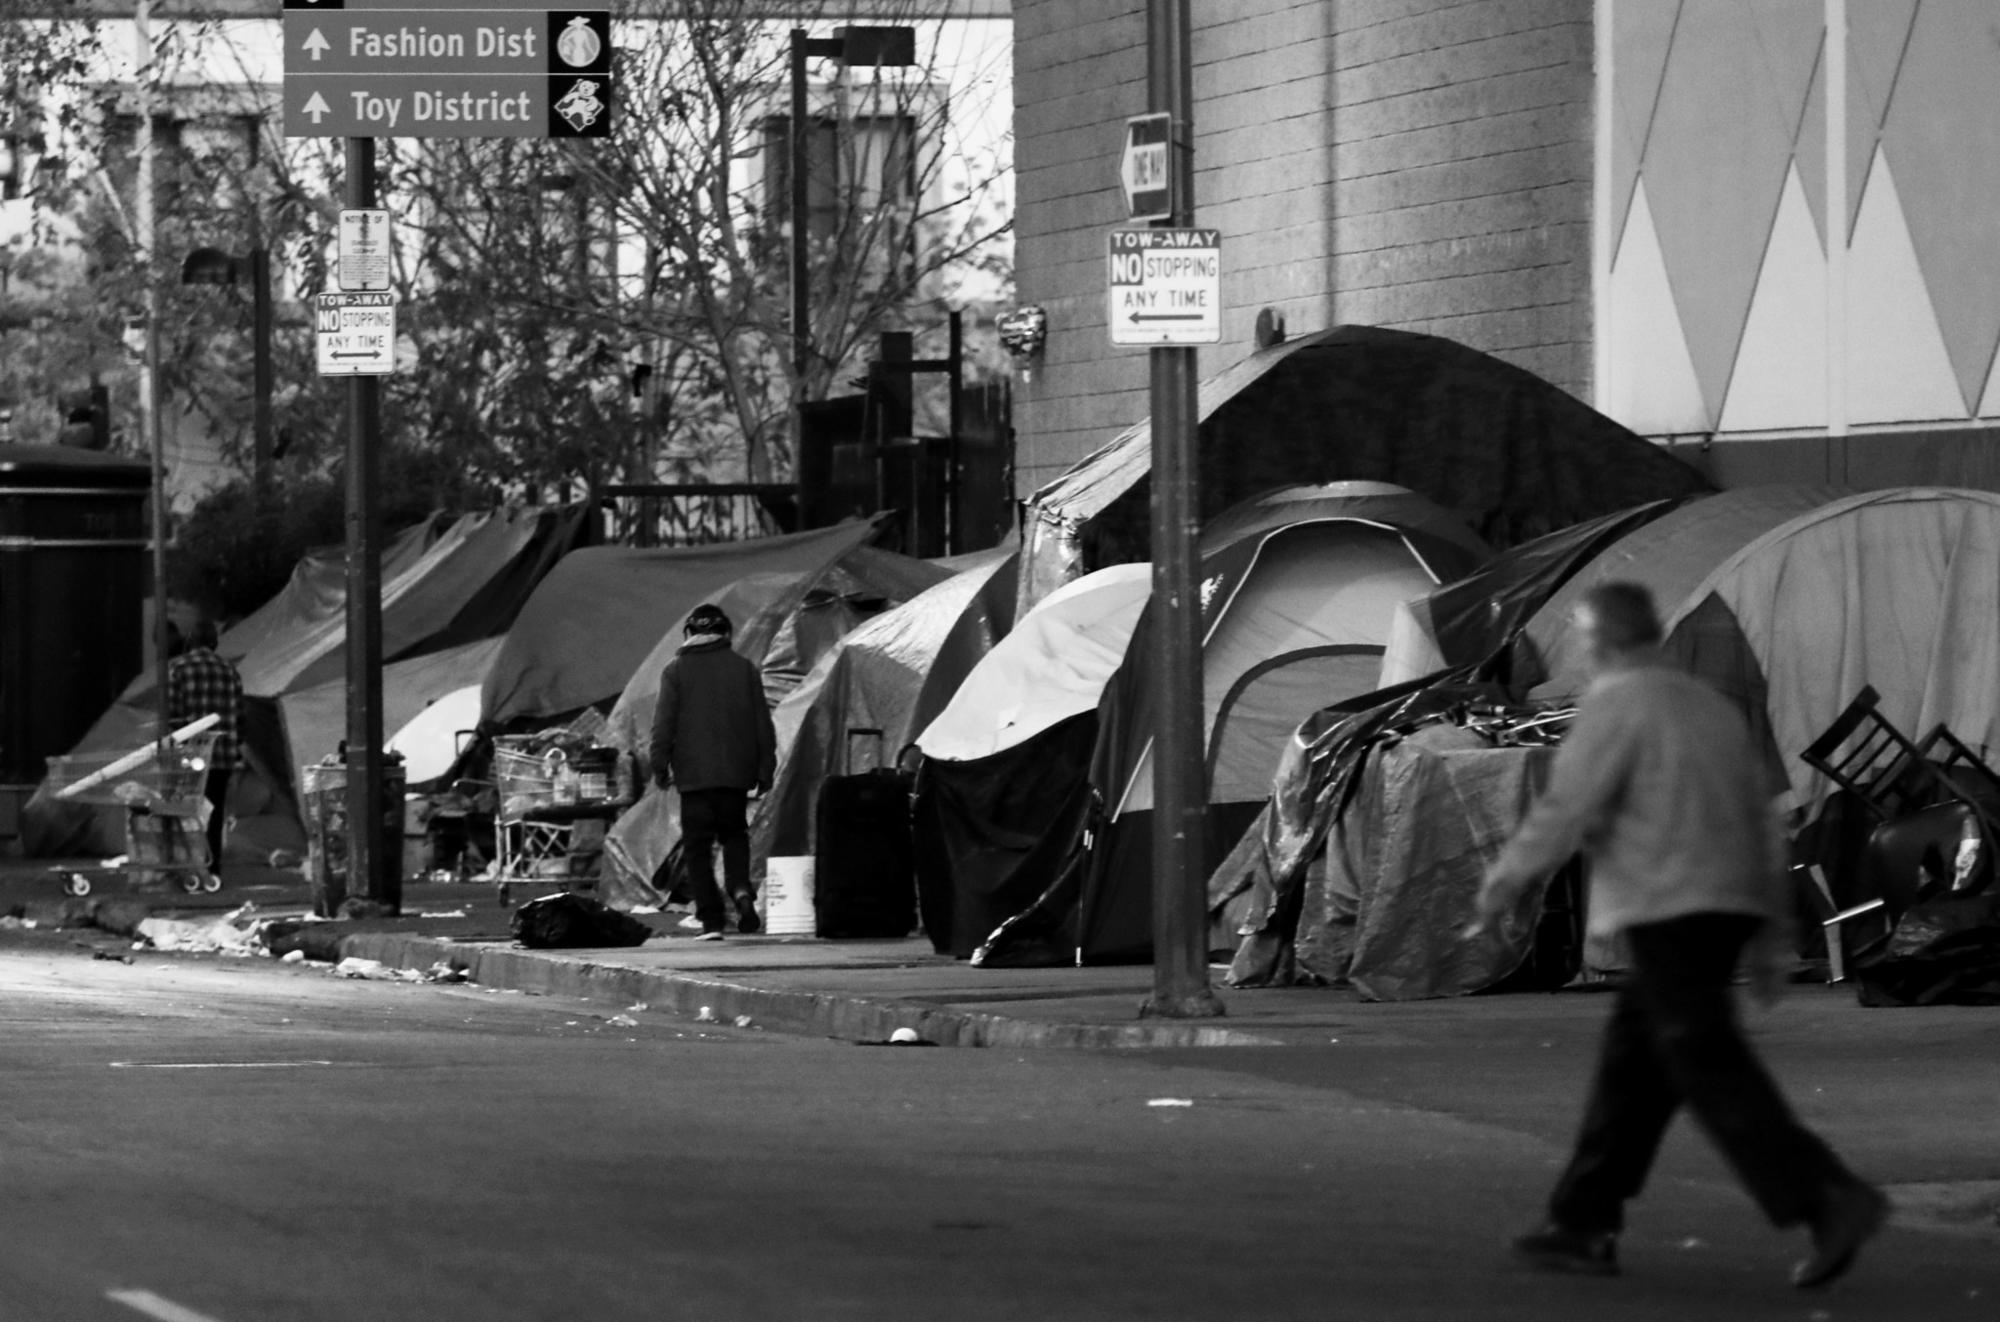 Streets lined with tents